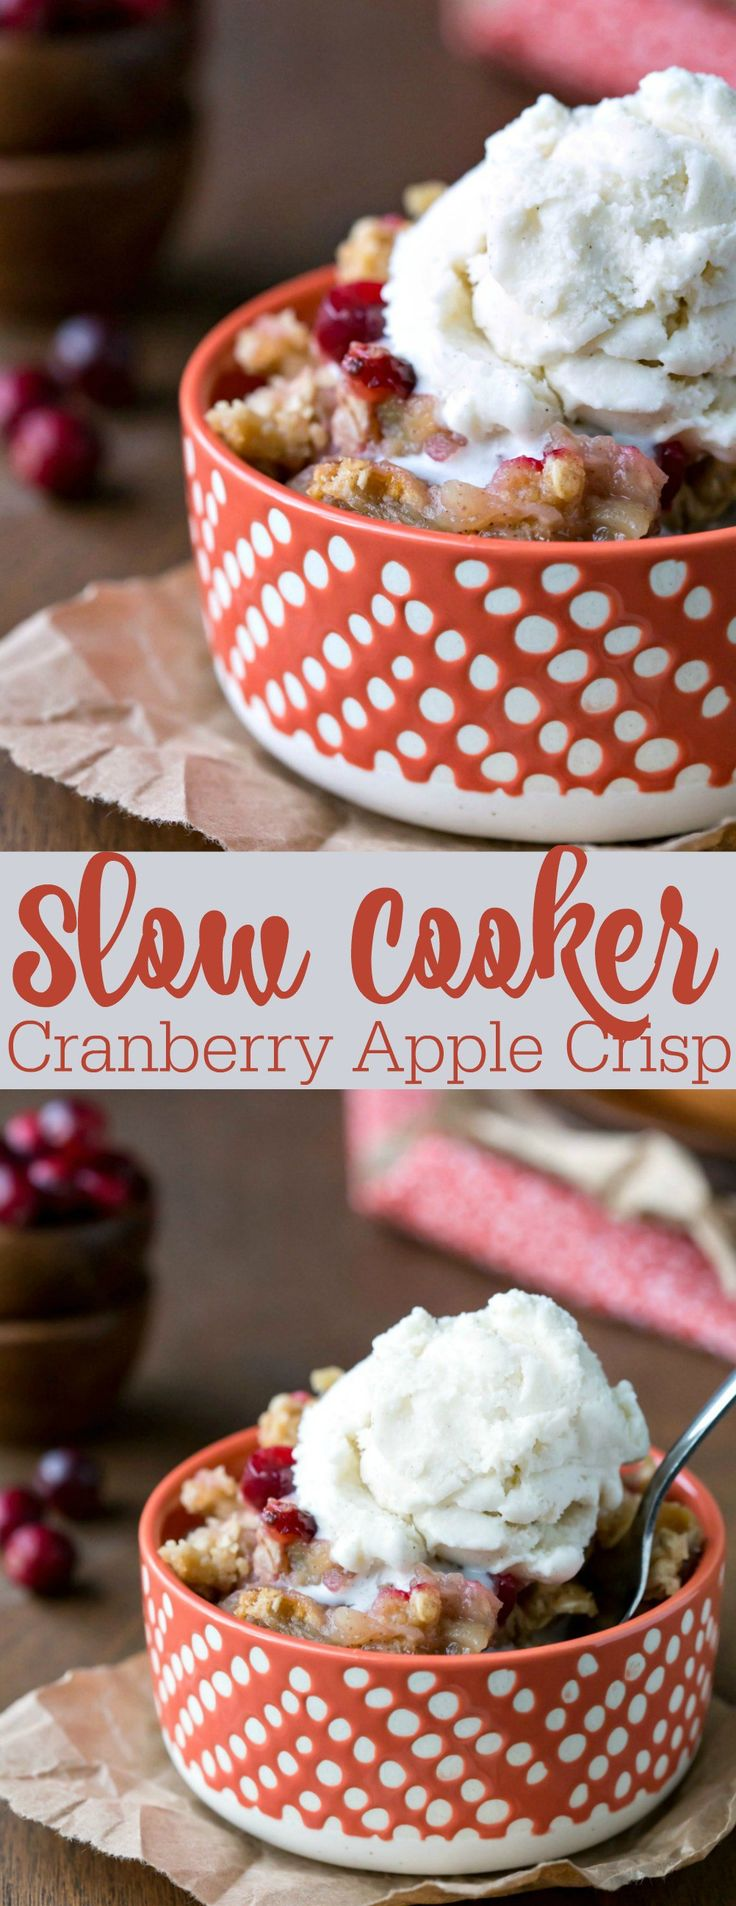 Slow Cooker Cranberry Apple Crisp - easy crock pot dessert recipe!